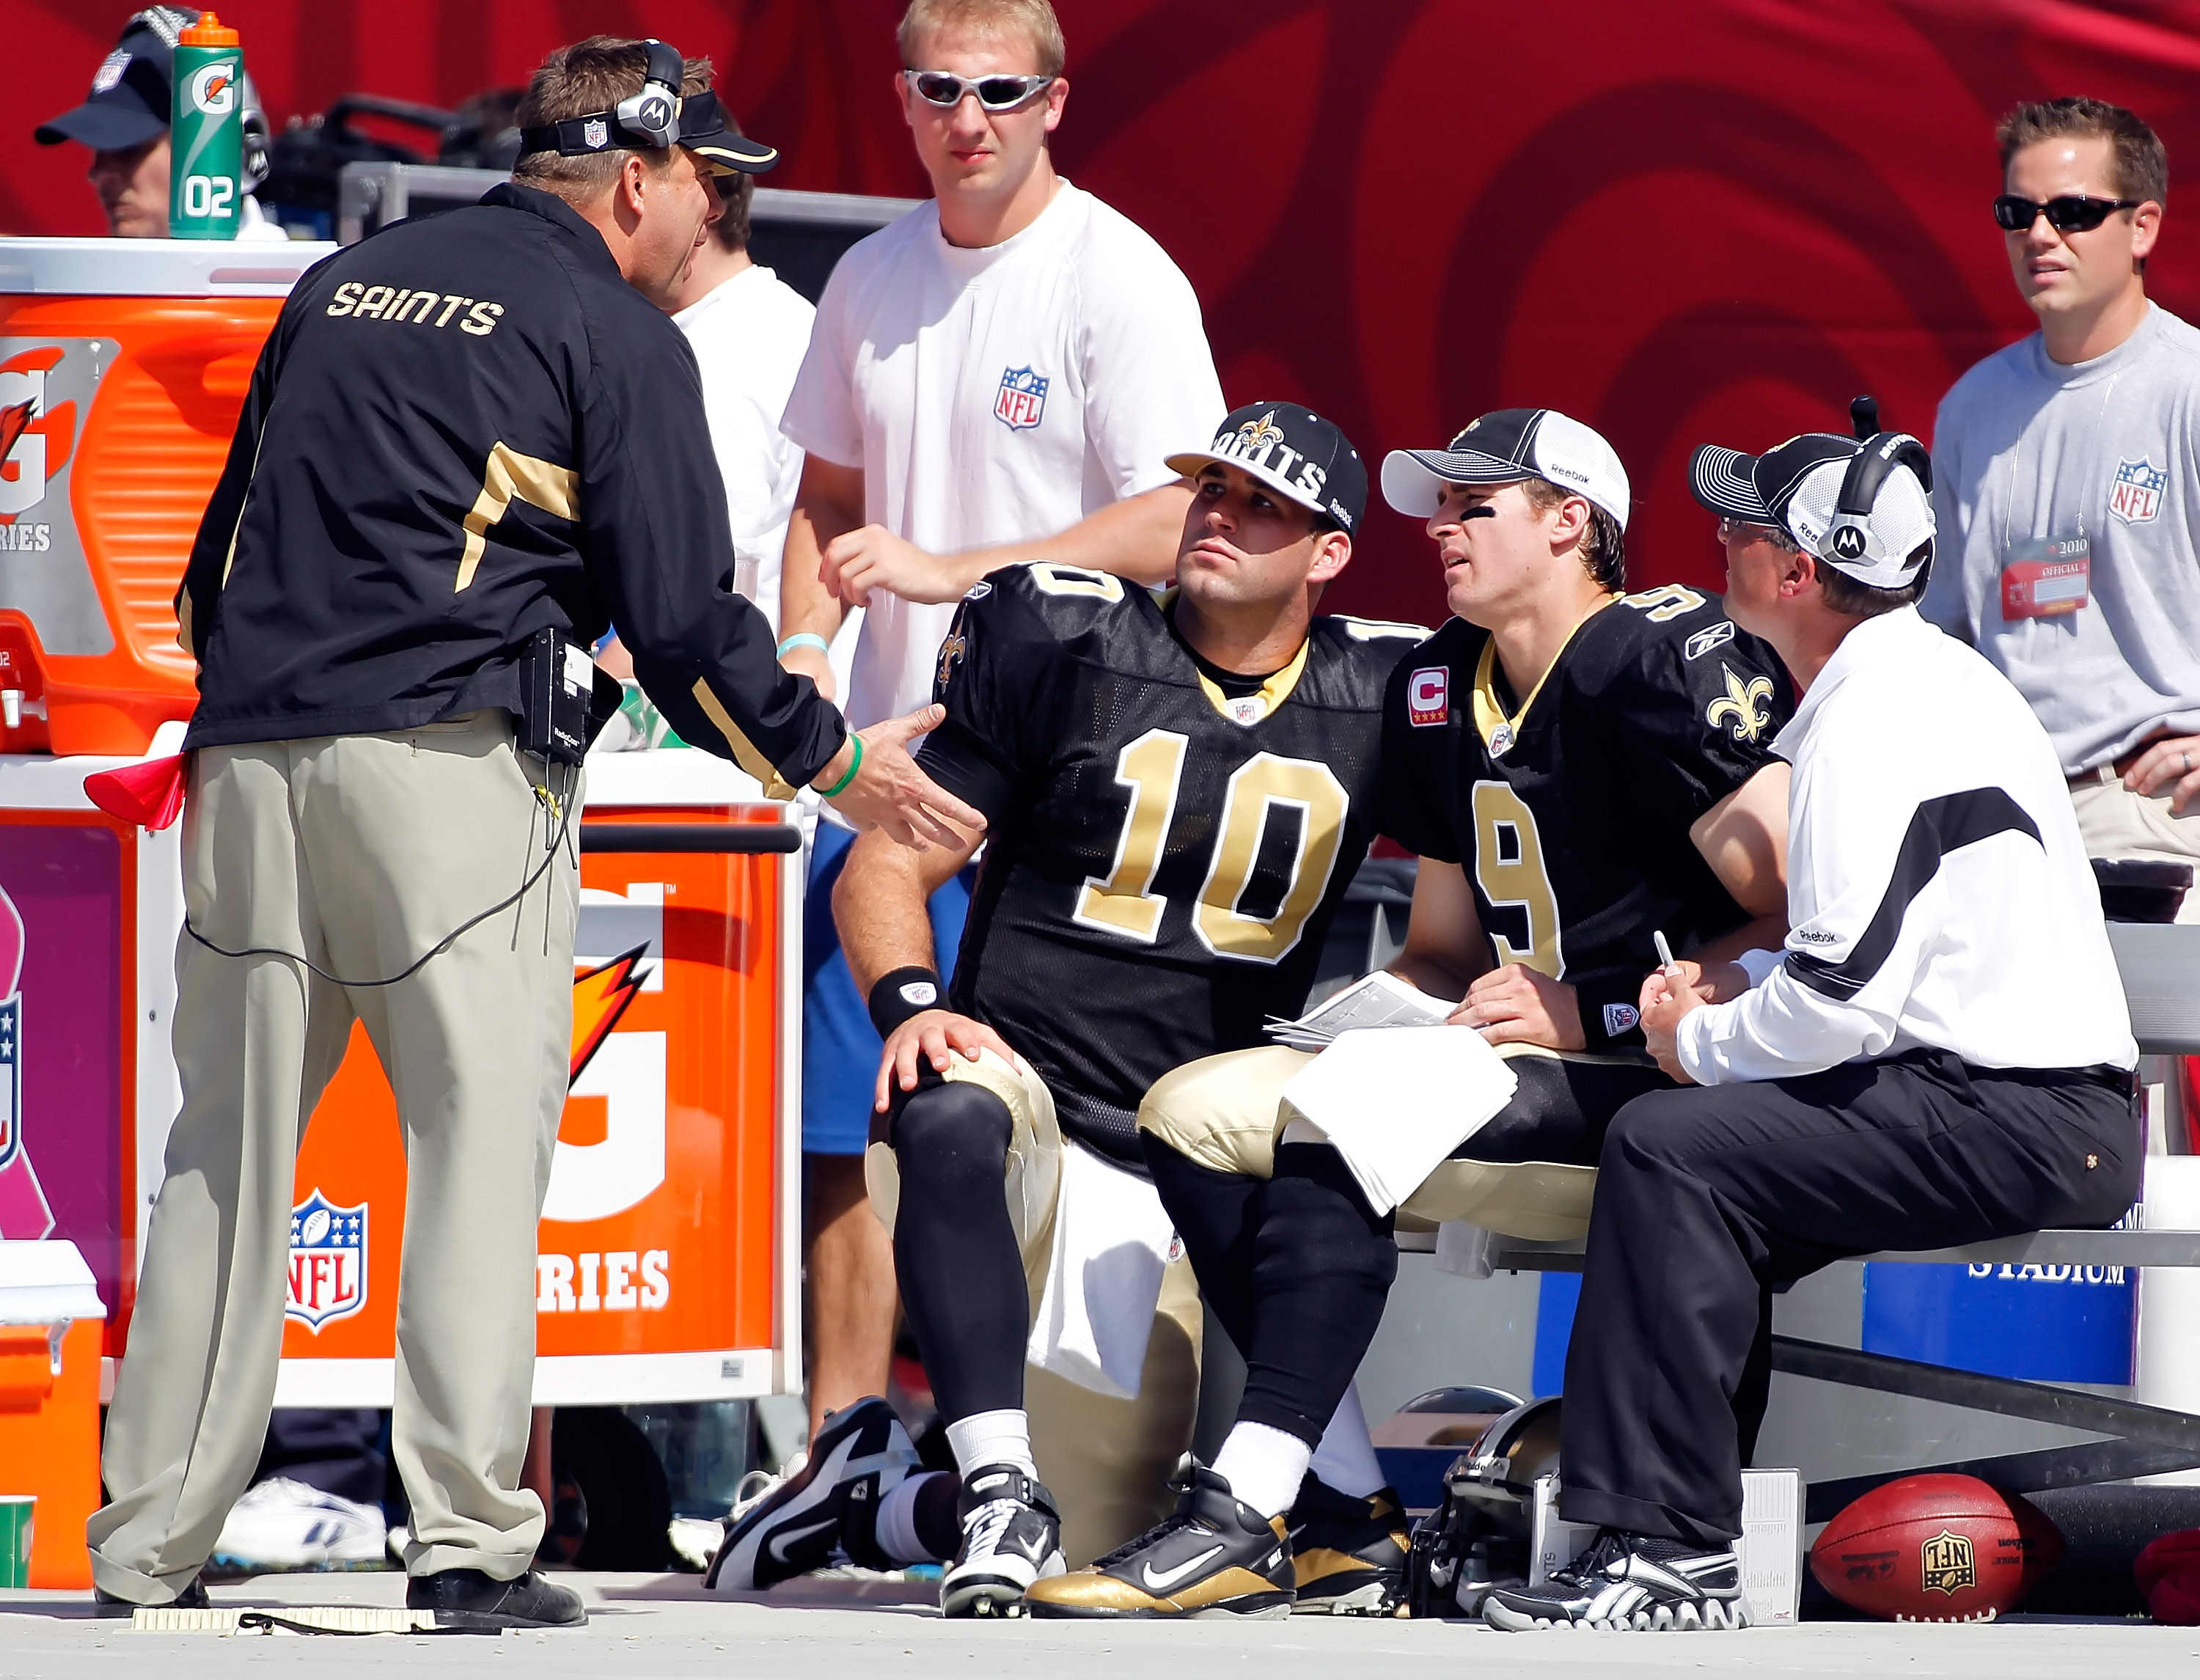 TAMPA, FL - OCTOBER 17:  Head coach Sean Payton of the New Orleans Saints talks with quarterbacks Chase Daniel #10 and Drew Brees #9 on the bench against the Tampa Bay Buccaneers during the game at Raymond James Stadium on October 17, 2010 in Tampa, Flori